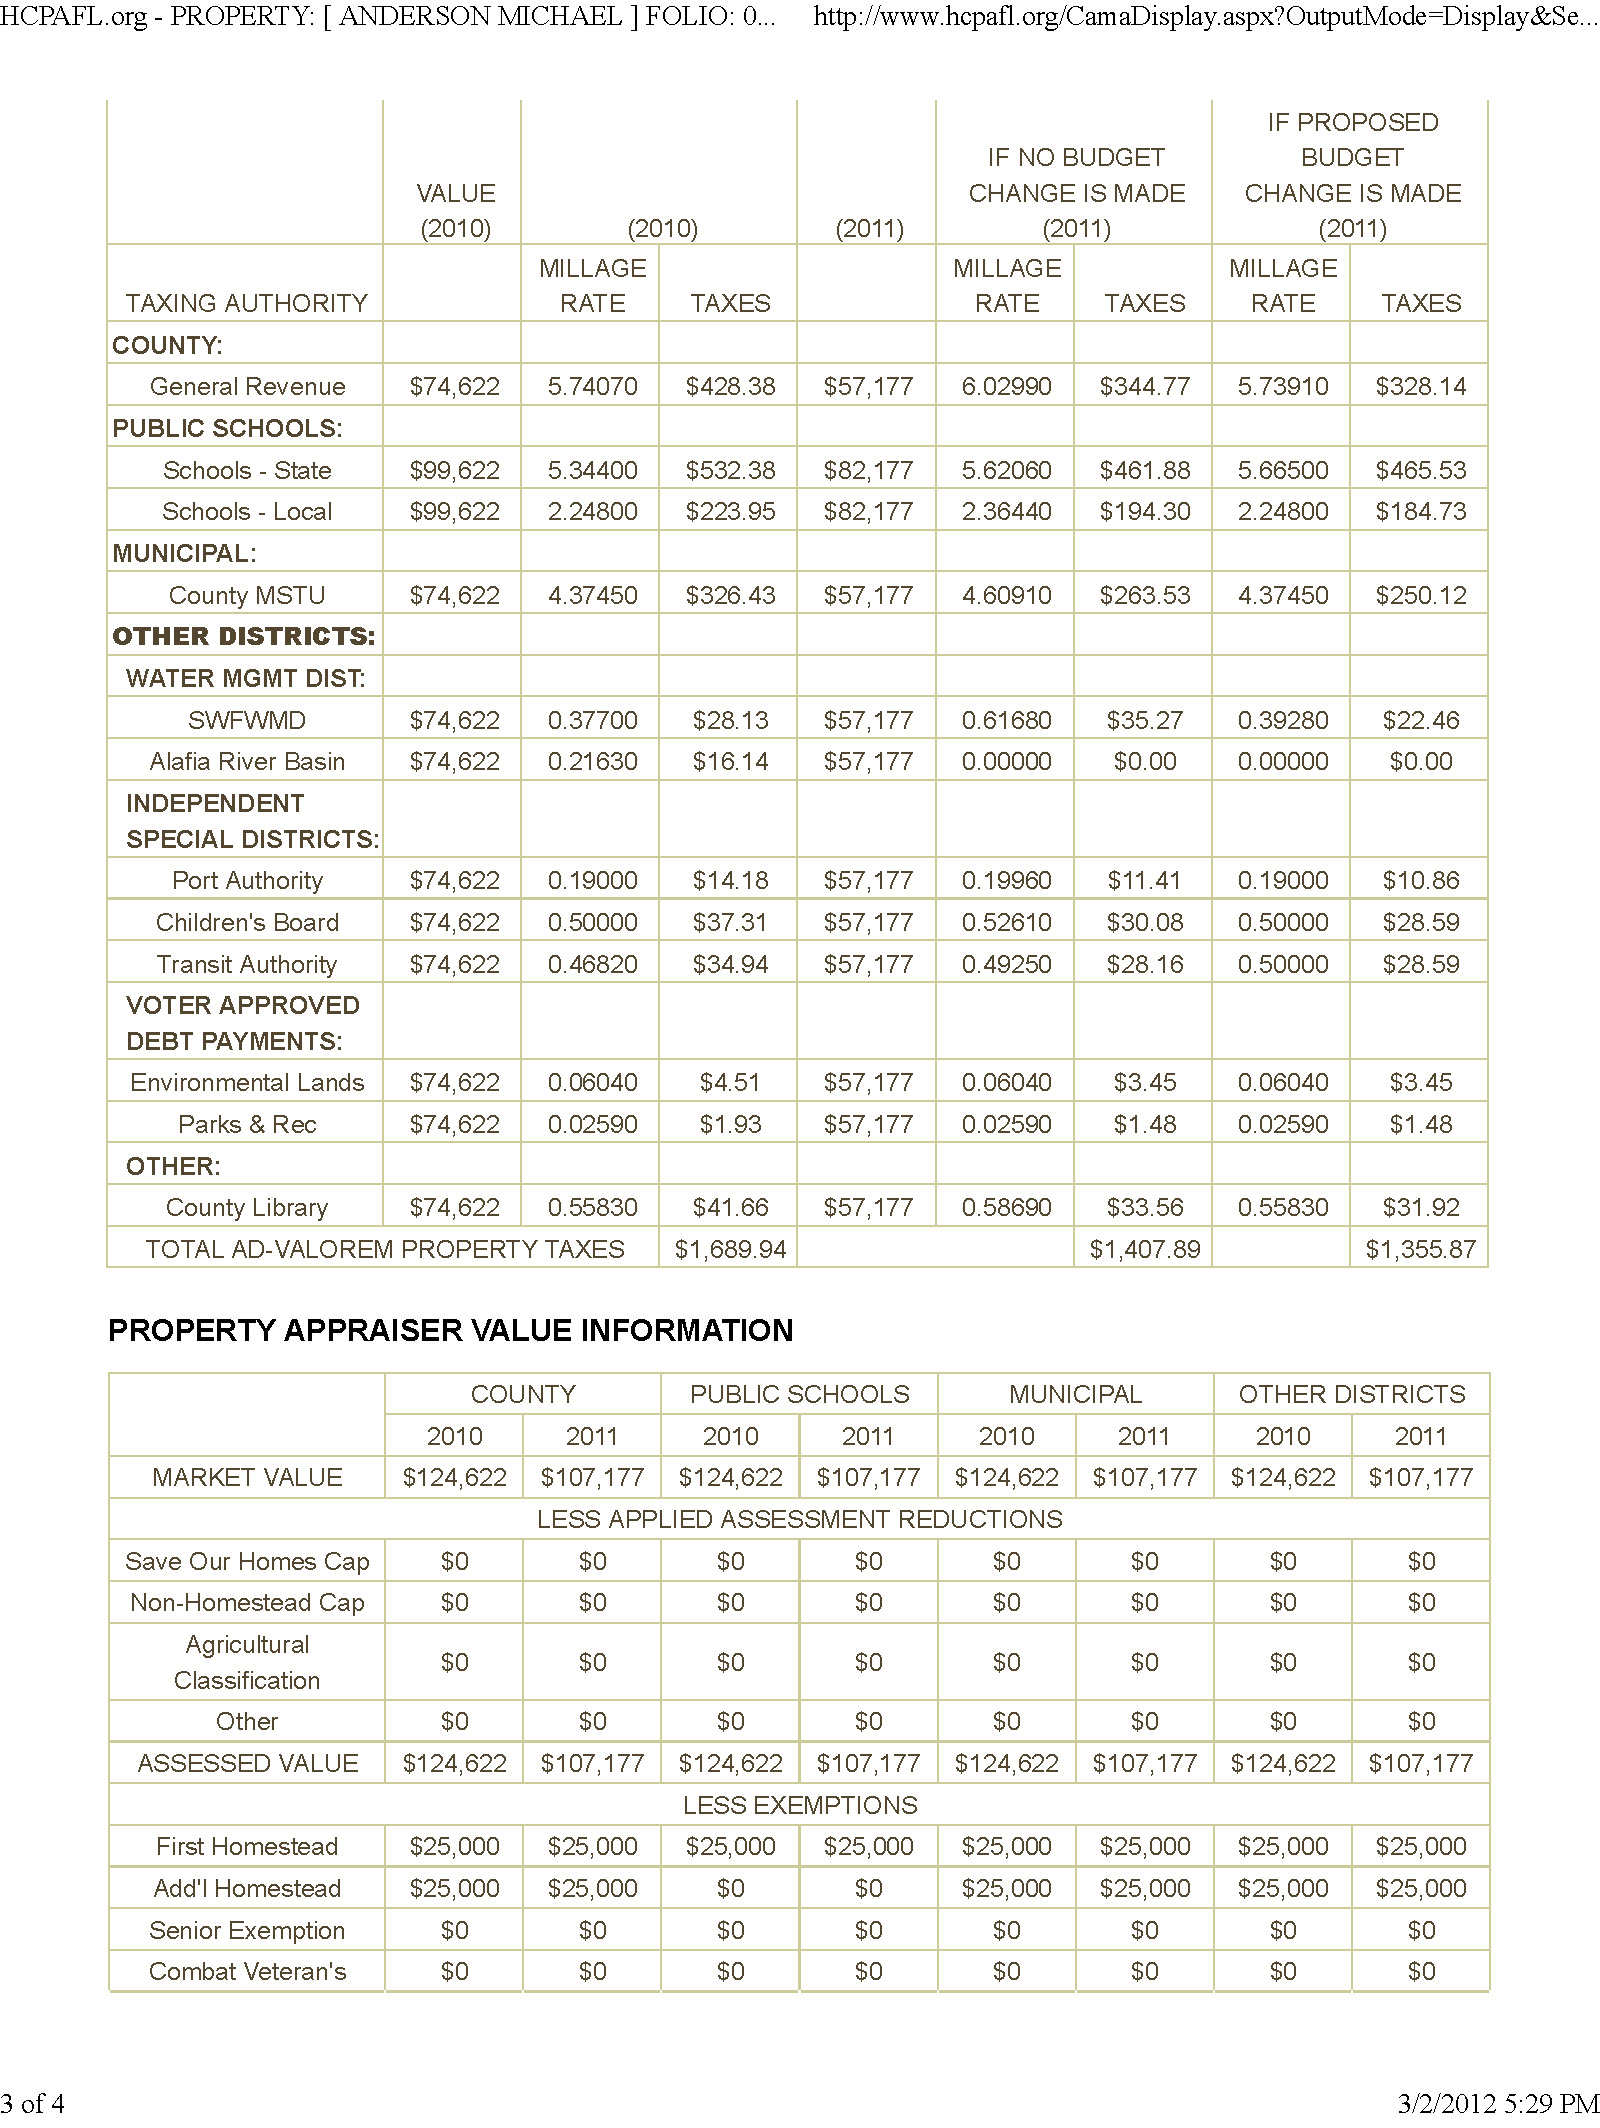 Copy of anderson ethel property tax info3.jpg